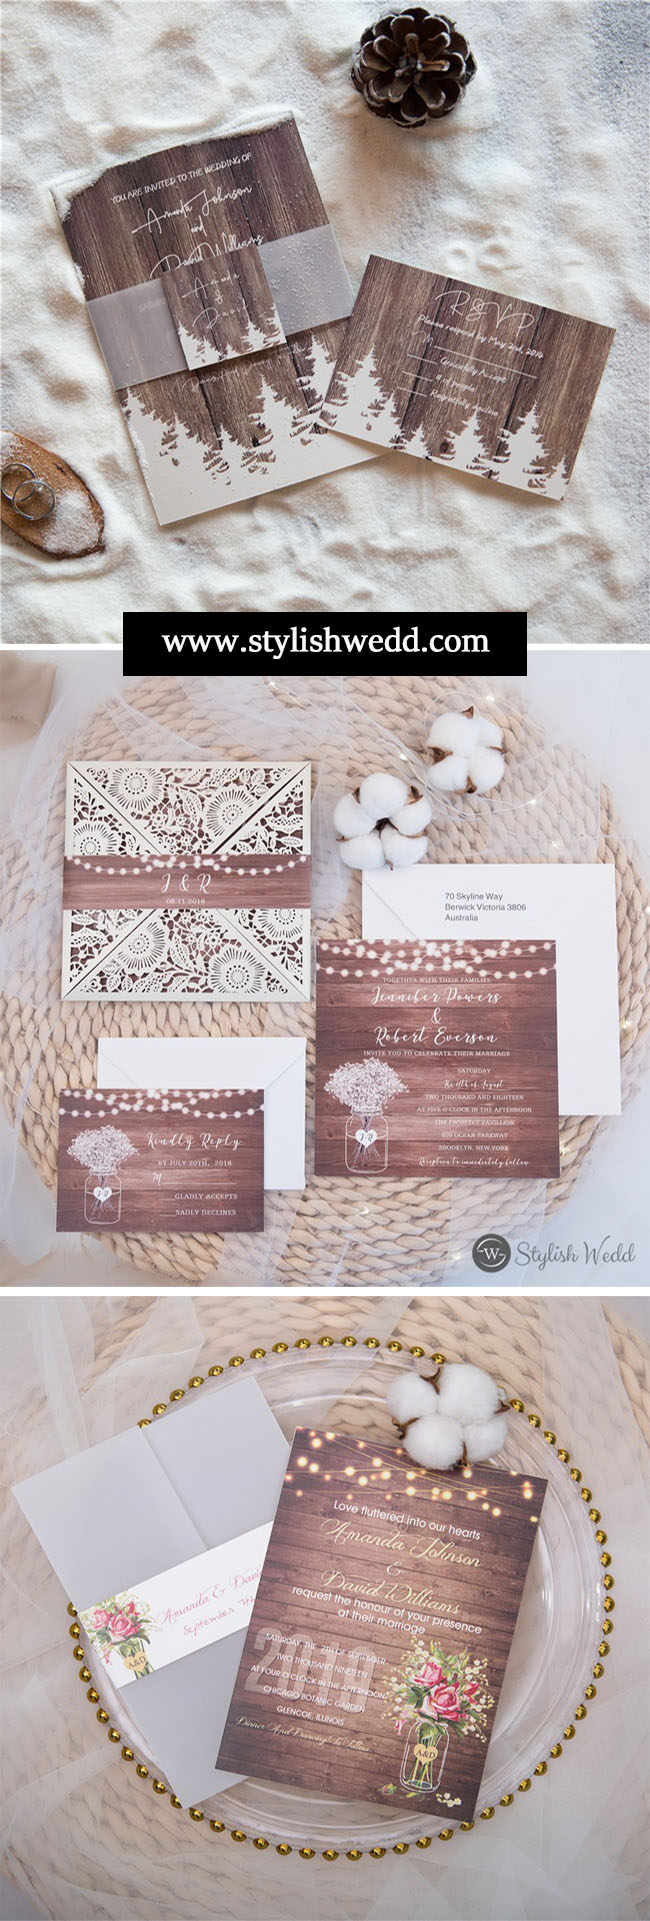 fall rustic cheap wedding invitations collection from stylishwedd